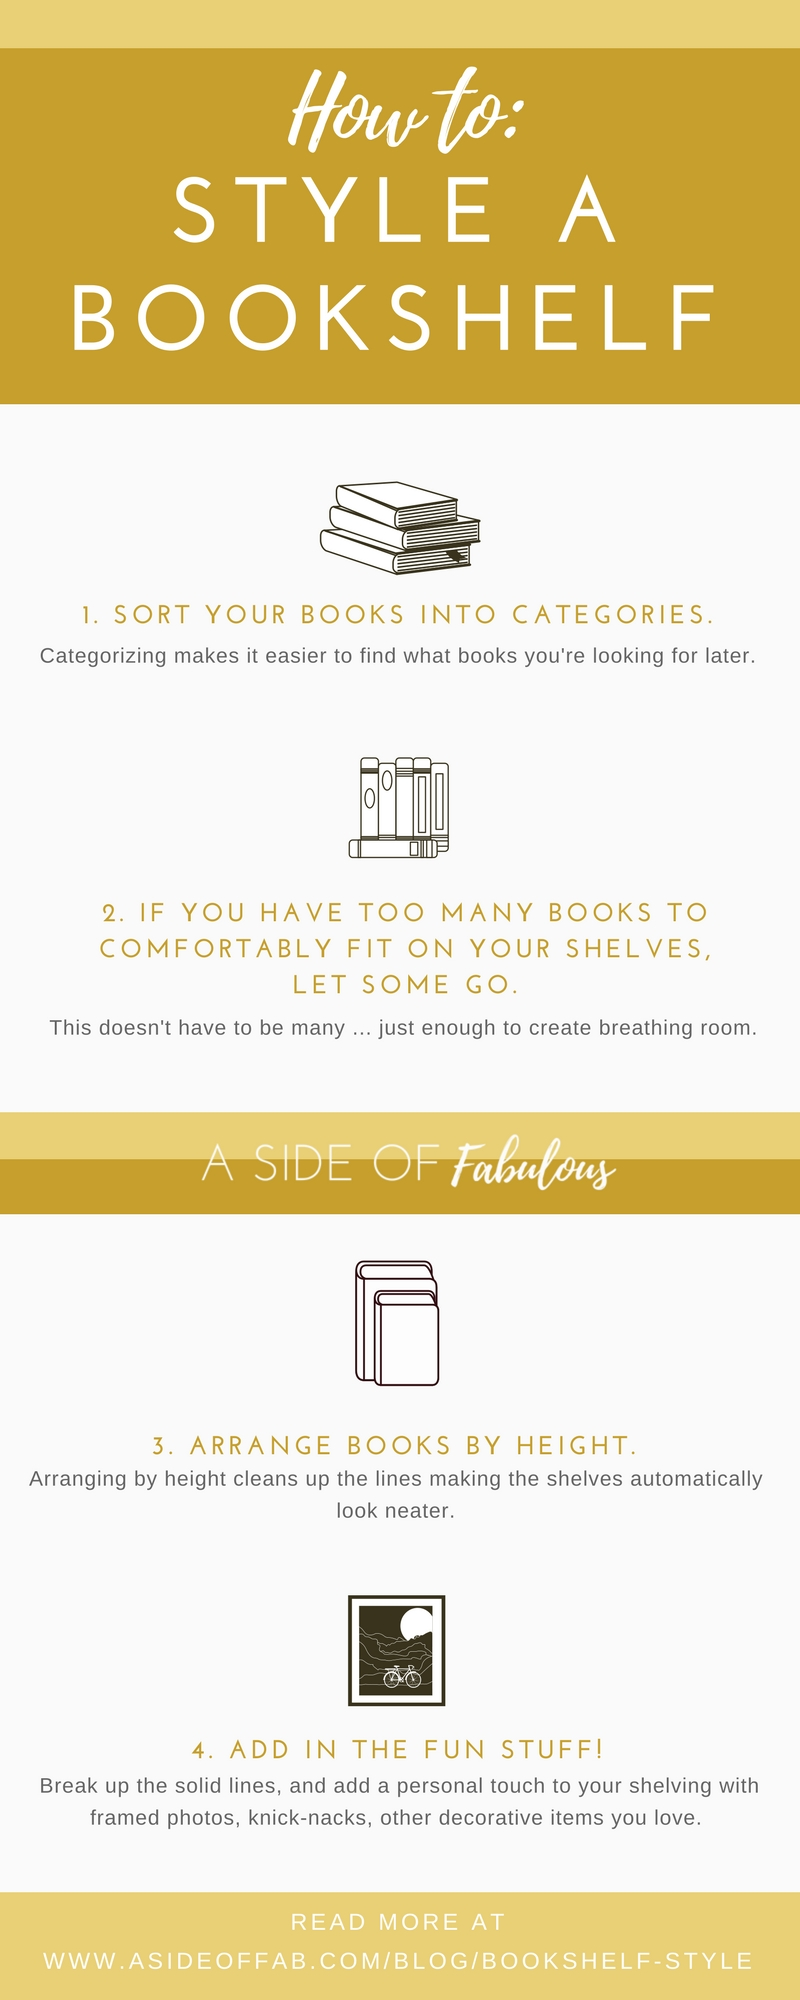 Bookshelf Styling Infographic.jpg